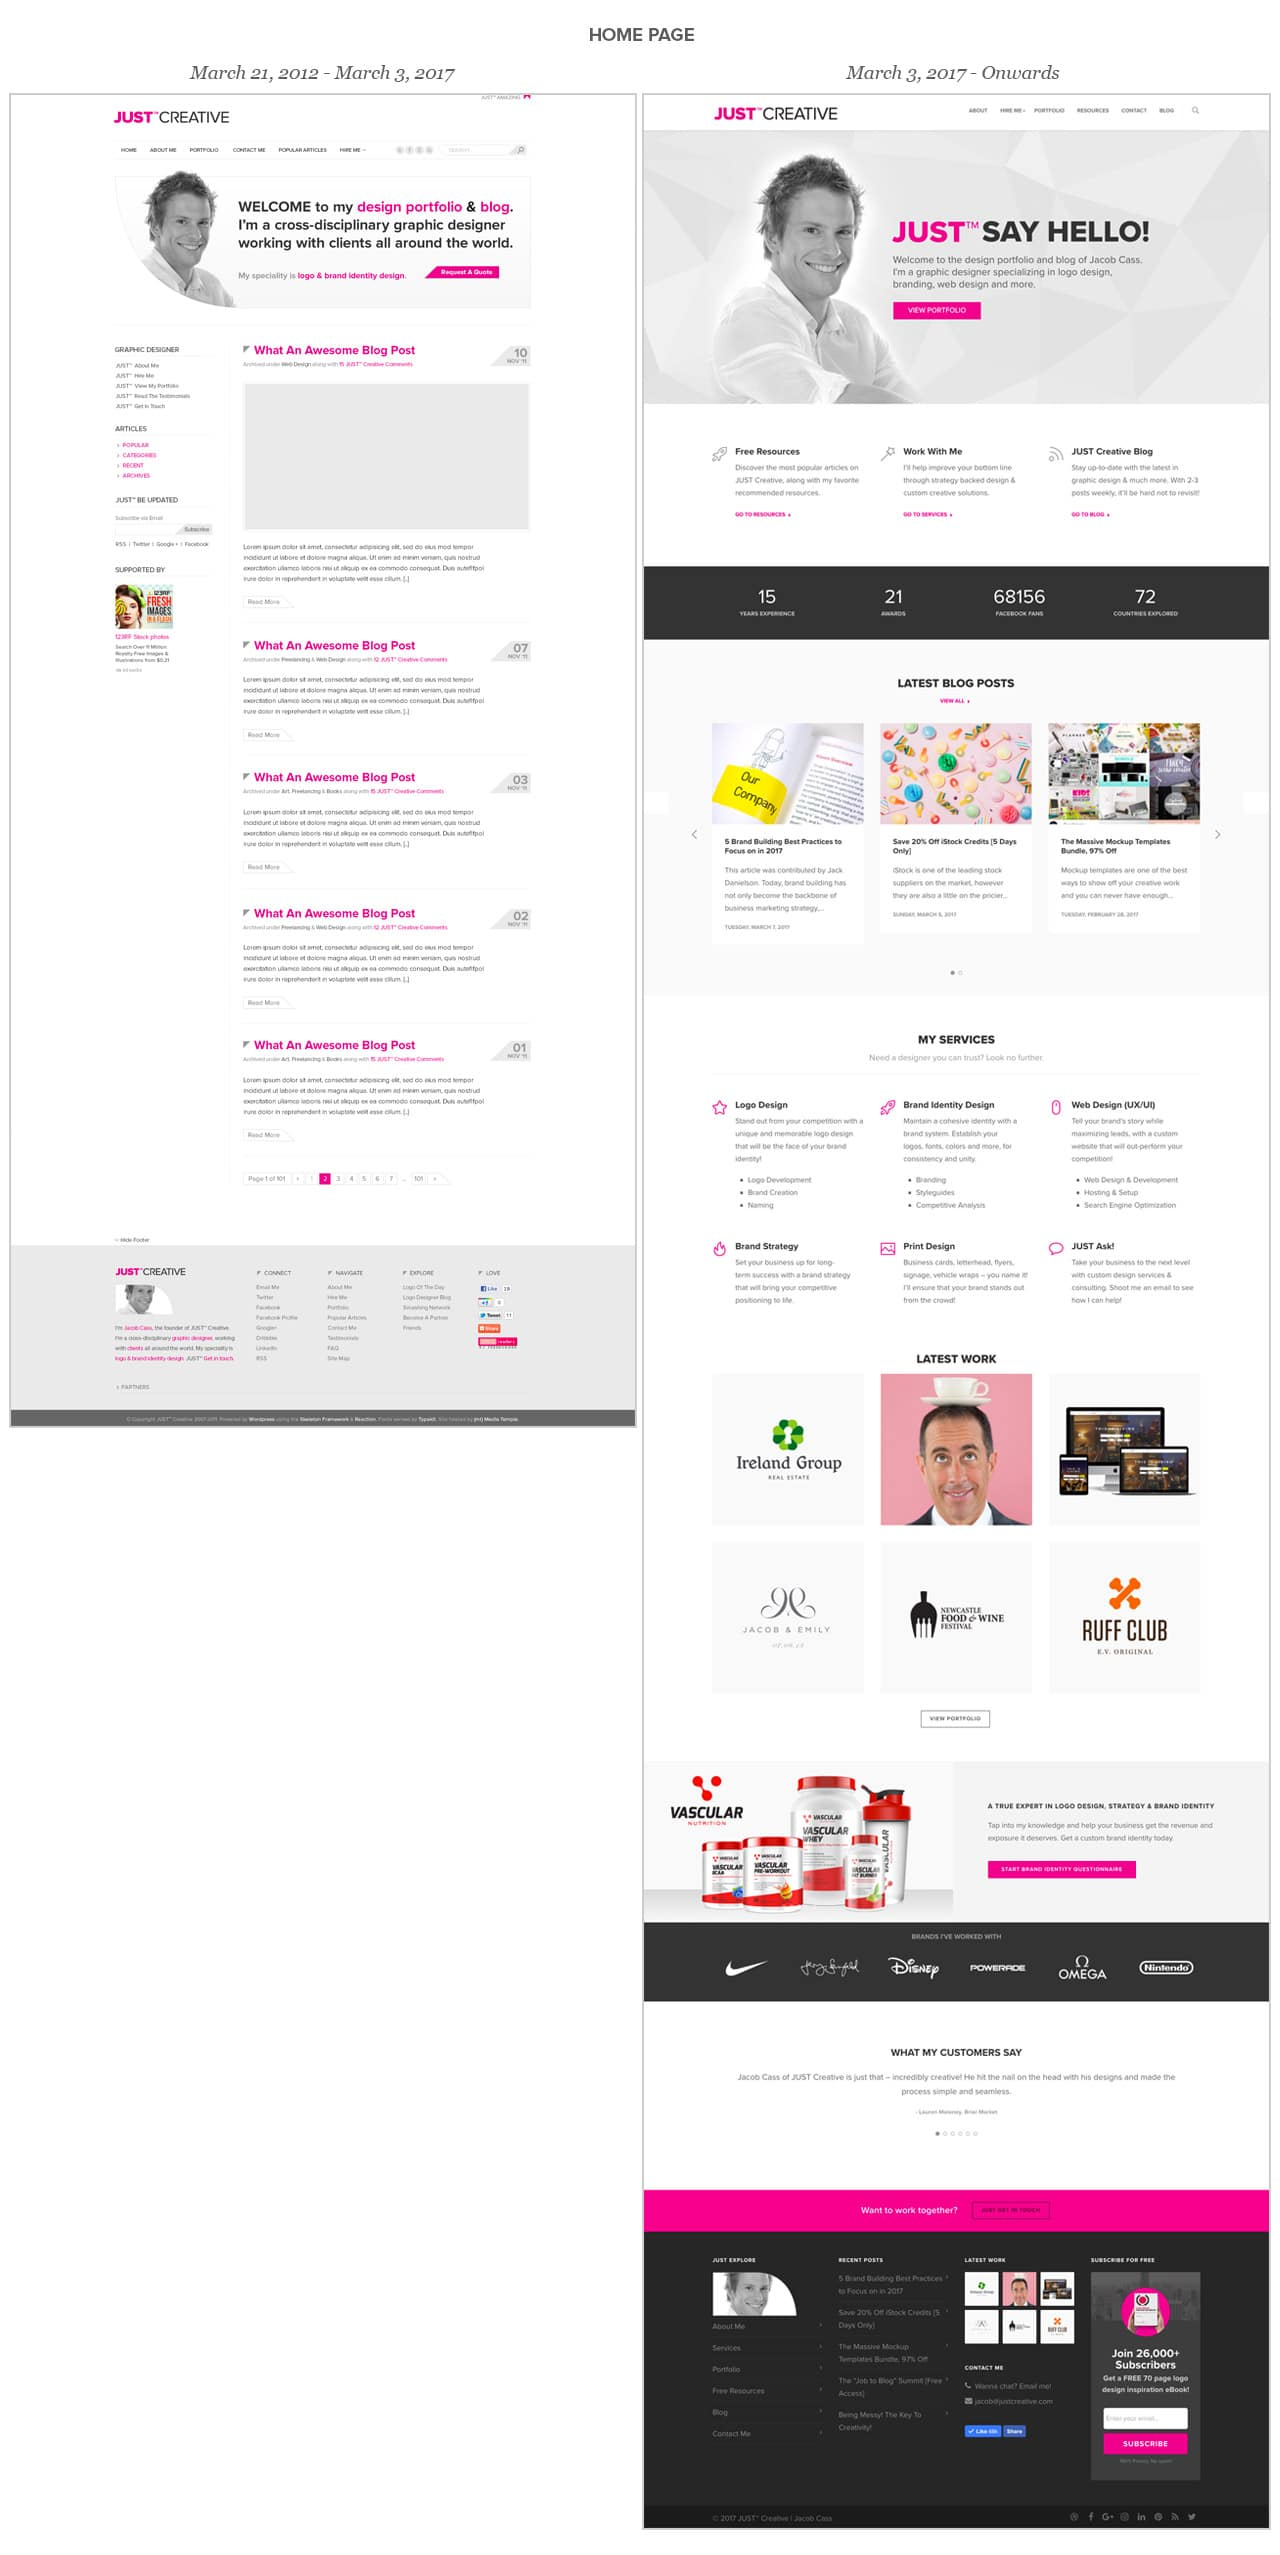 Just Creative Web Home Page